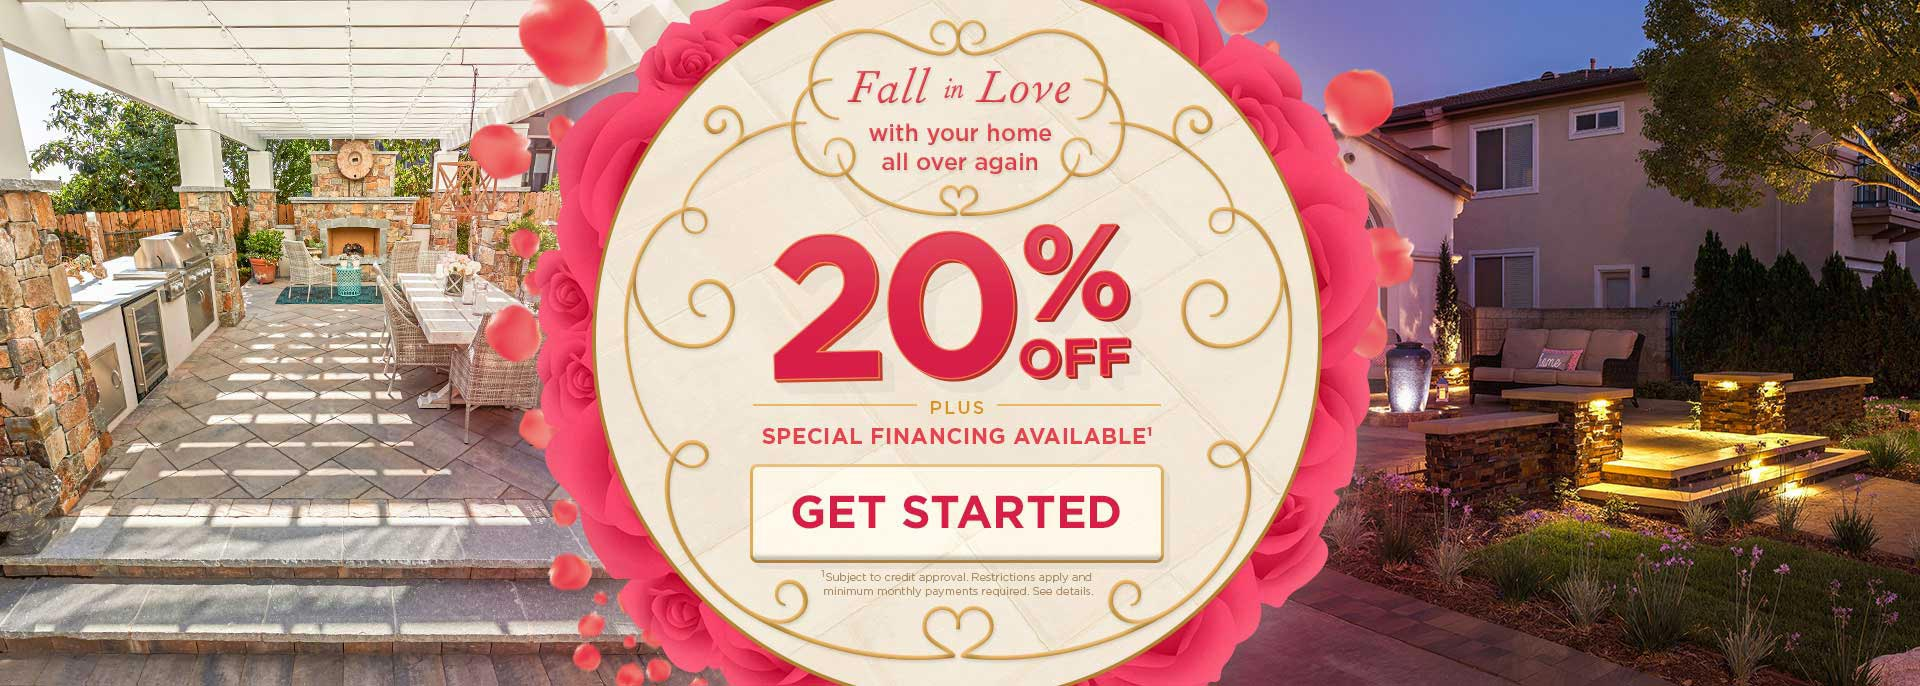 Fall in love with your home again!